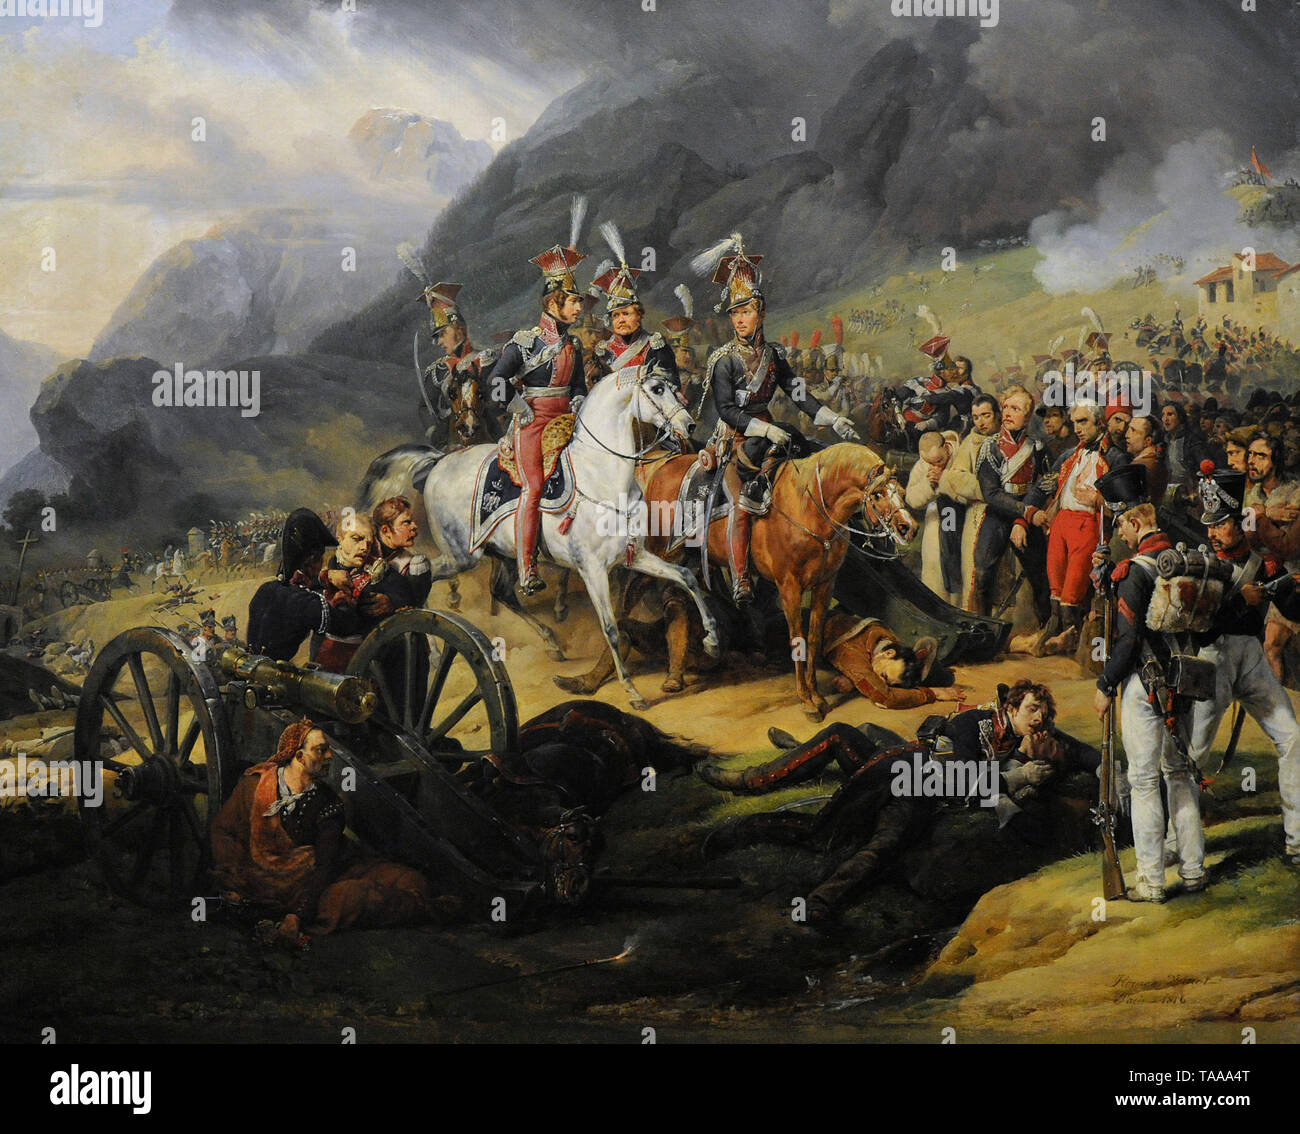 Wincenty Krasinski (1782-1858). Polish General. Wincenty Krasinski in the Somosierra Gorge, 1816. Painting by Horace Vernet (1789-1863). National Museum. Warsaw. Poland. Stock Photo